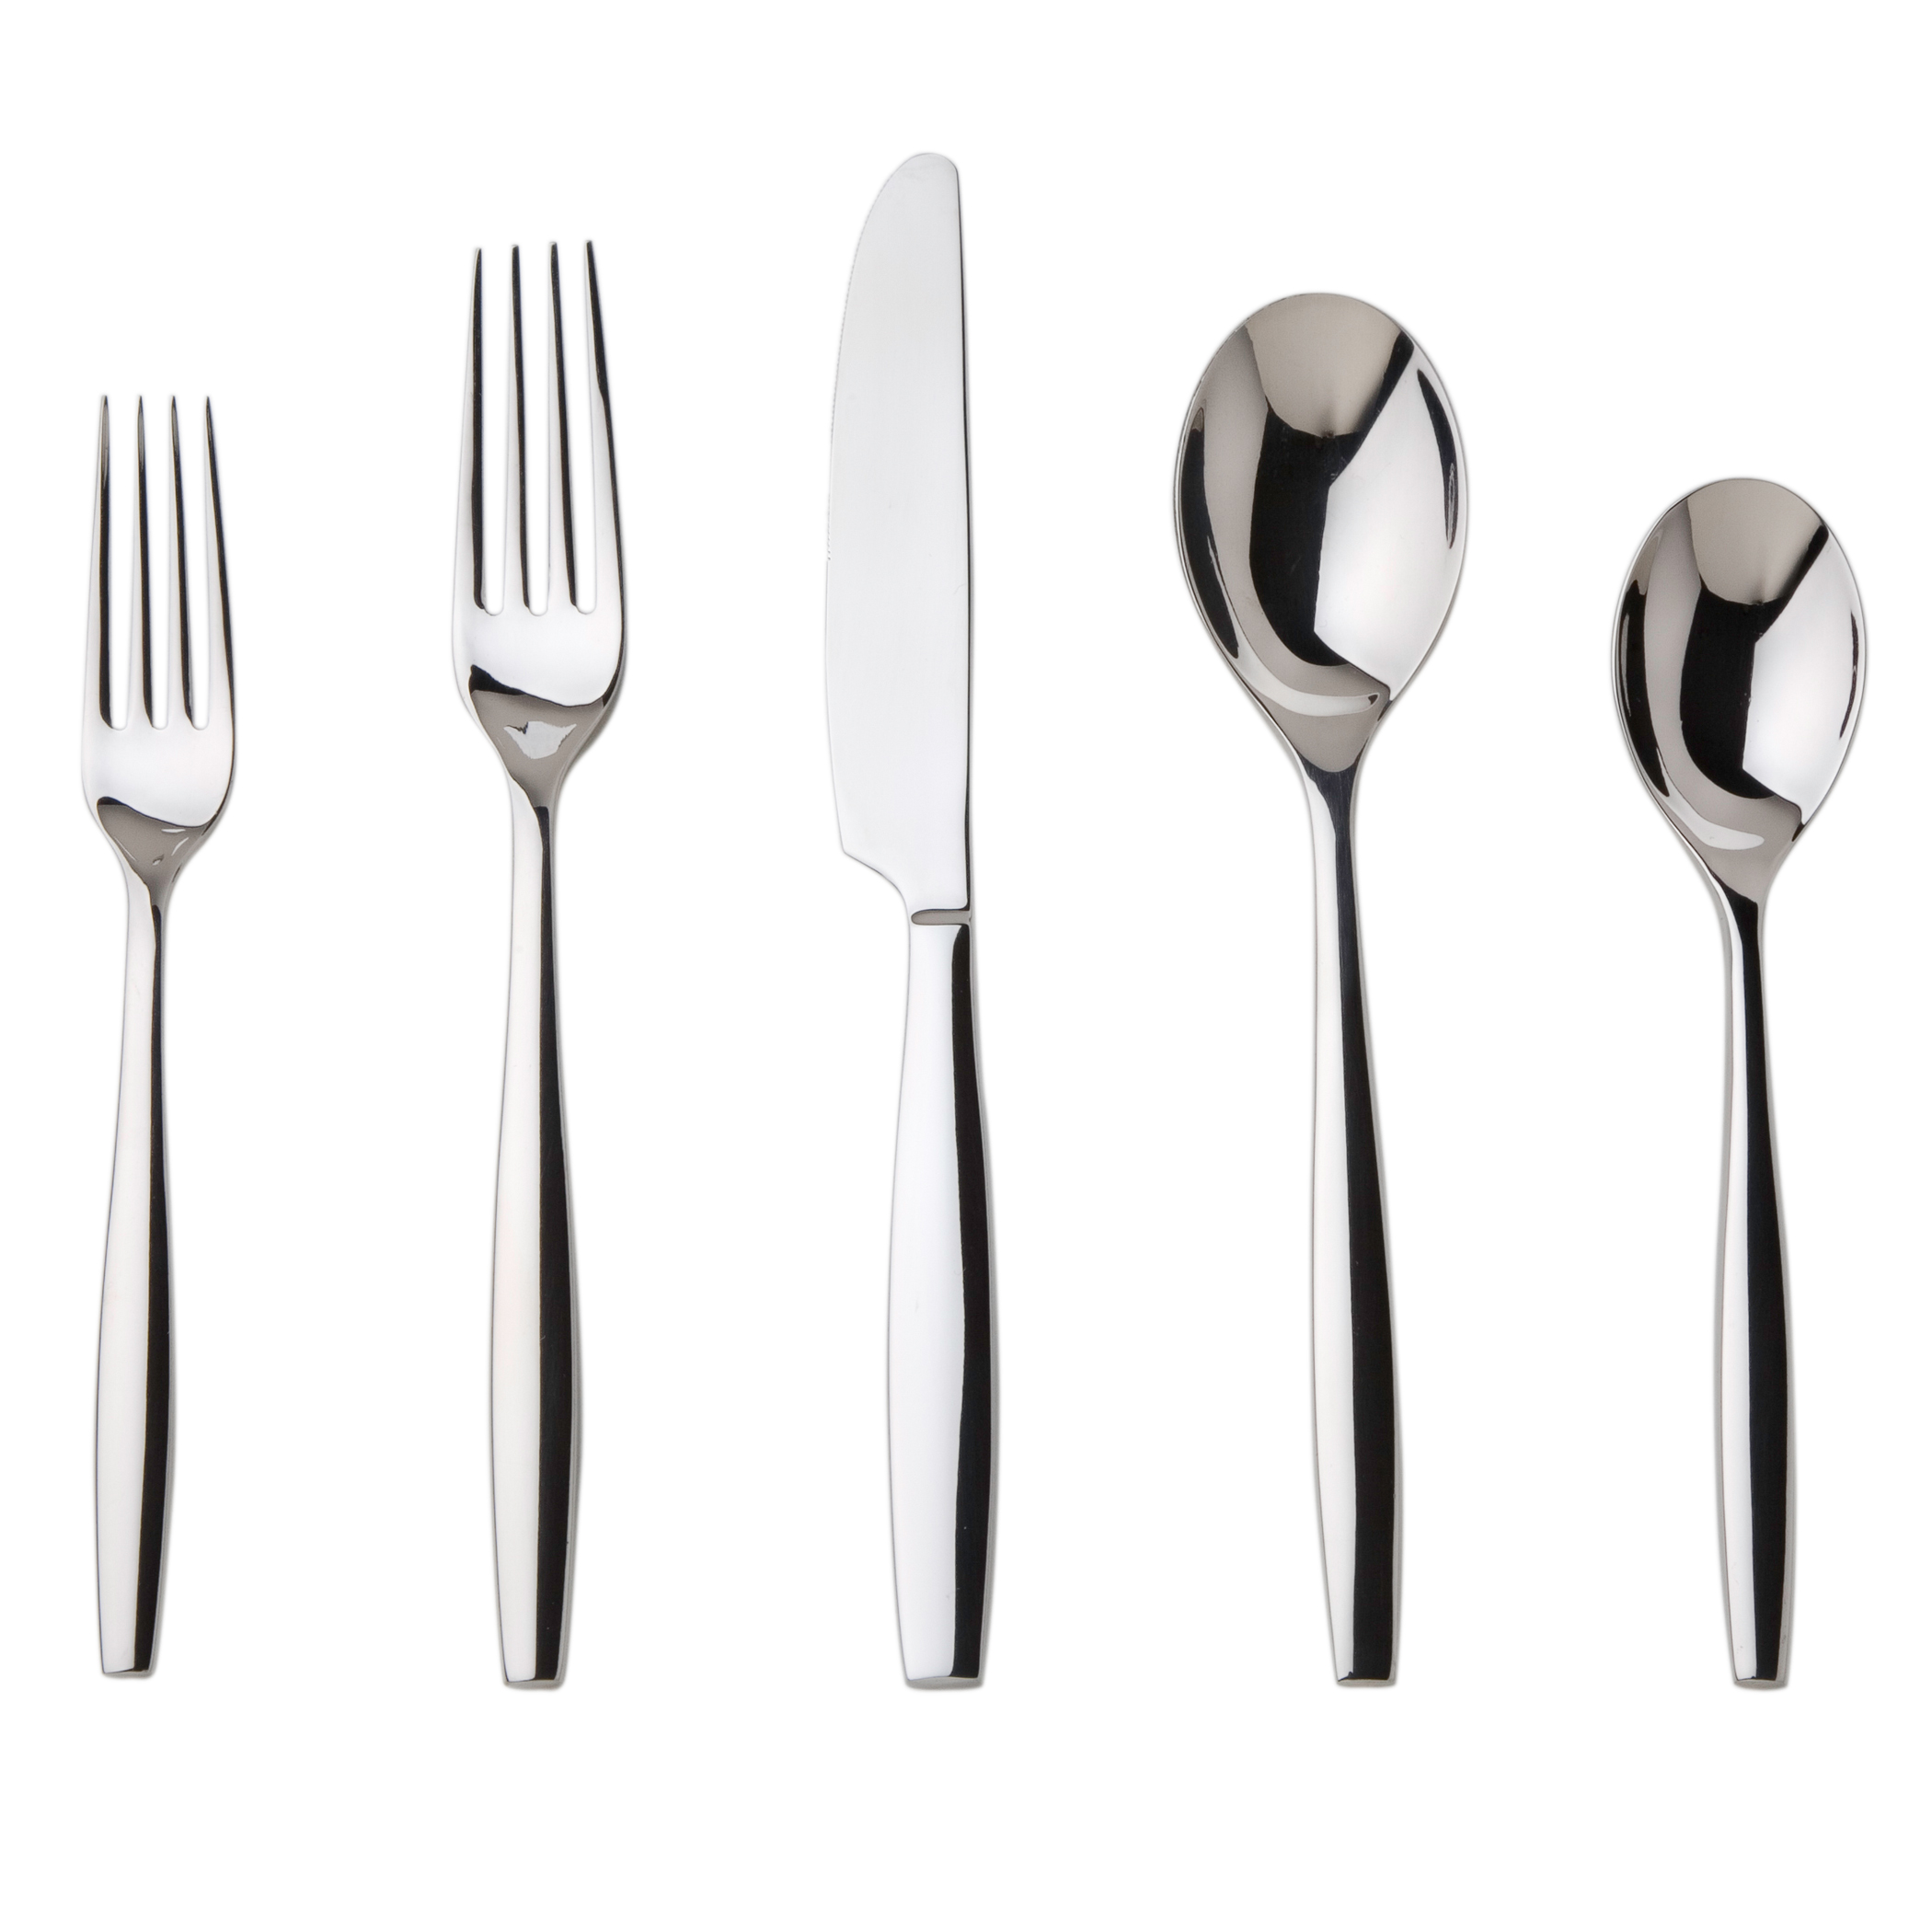 Contemporary Stainless Steel Flatware Aidan Flatware Modern Look With A Clean Design Includes